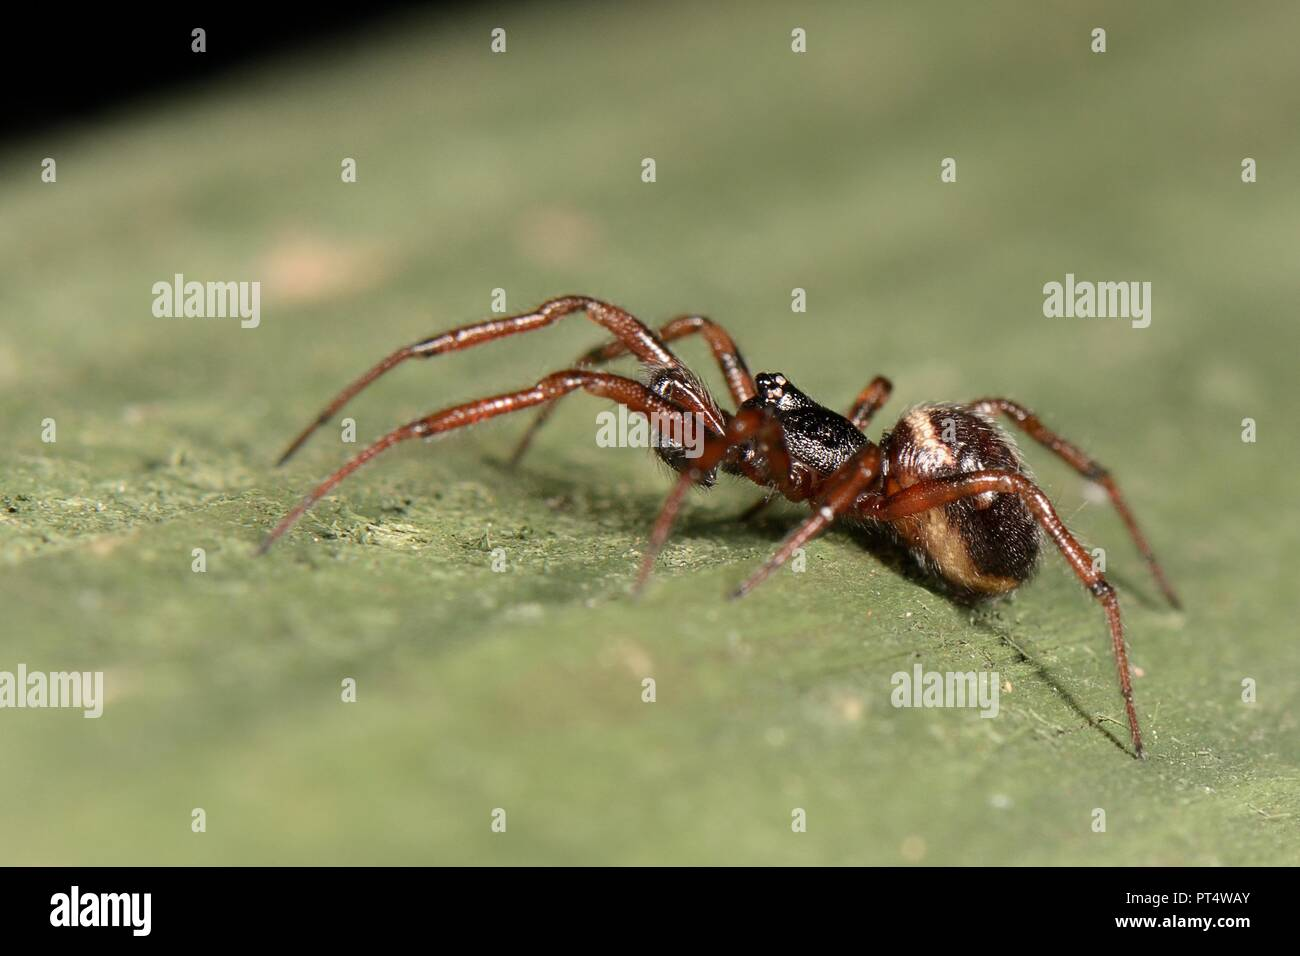 Common false widow / Rabbit hutch spider (Steatoda bipunctata) male, on a garden fence, Wiltshire, UK, October. - Stock Image